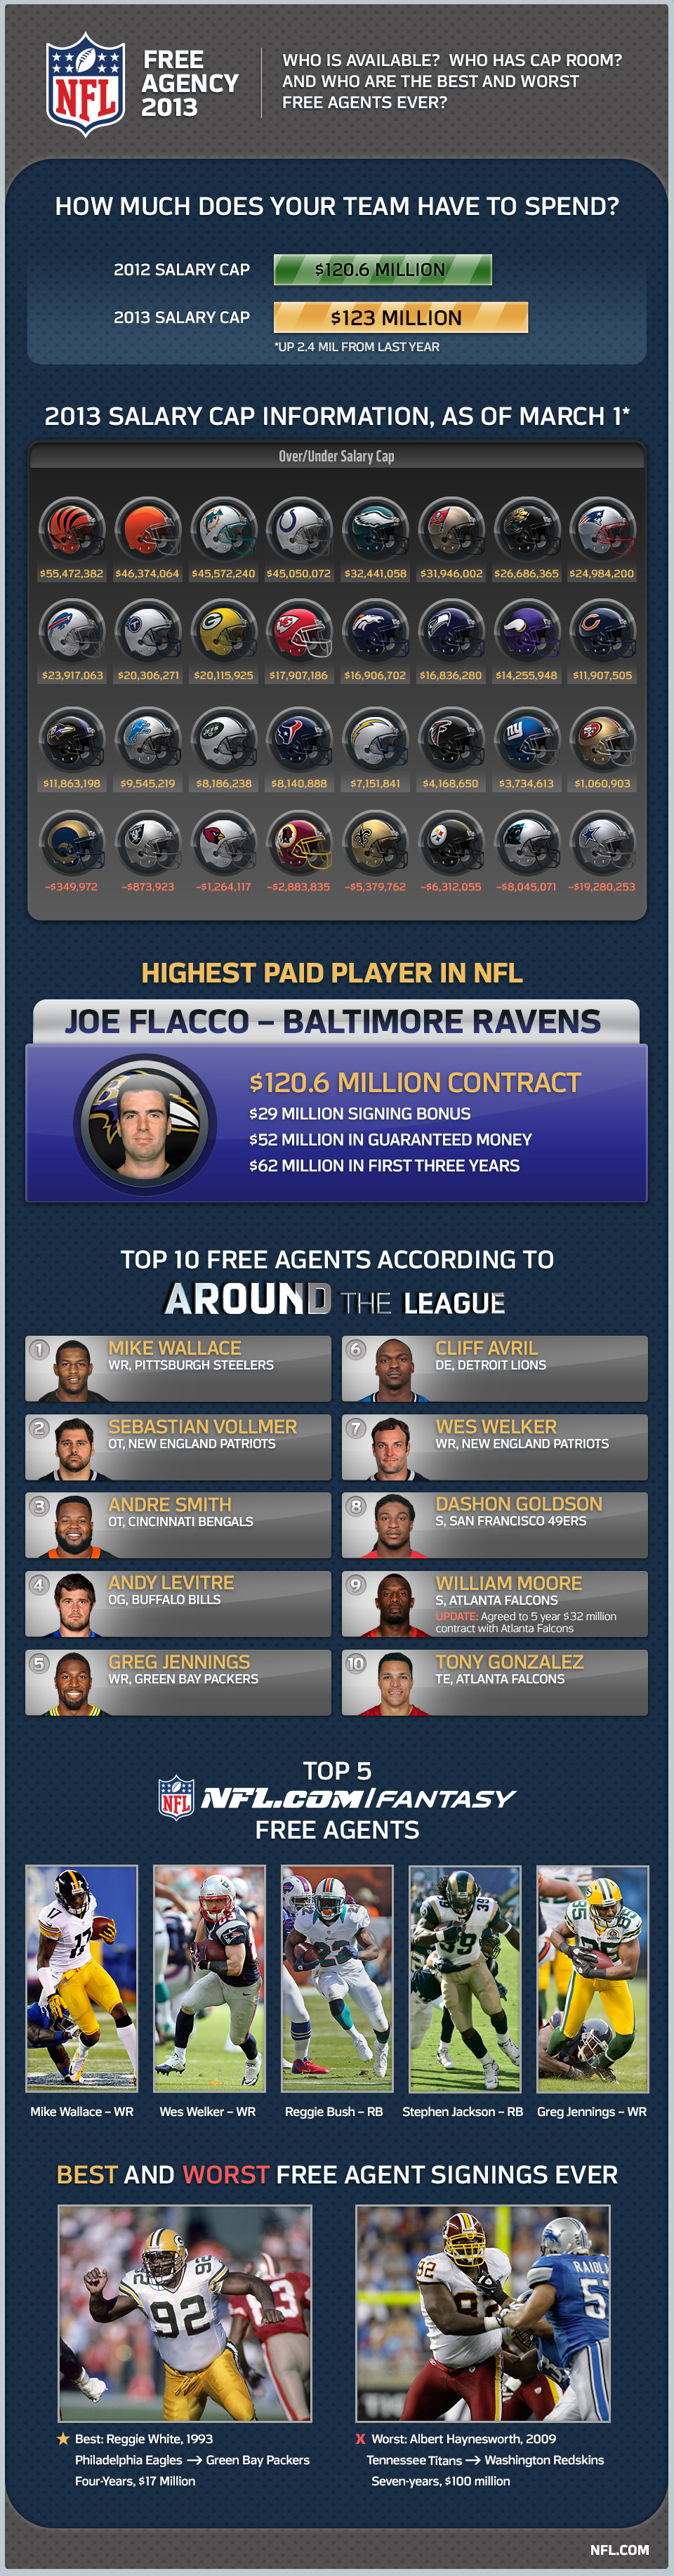 NFL Free Agency: Behind the Numbers